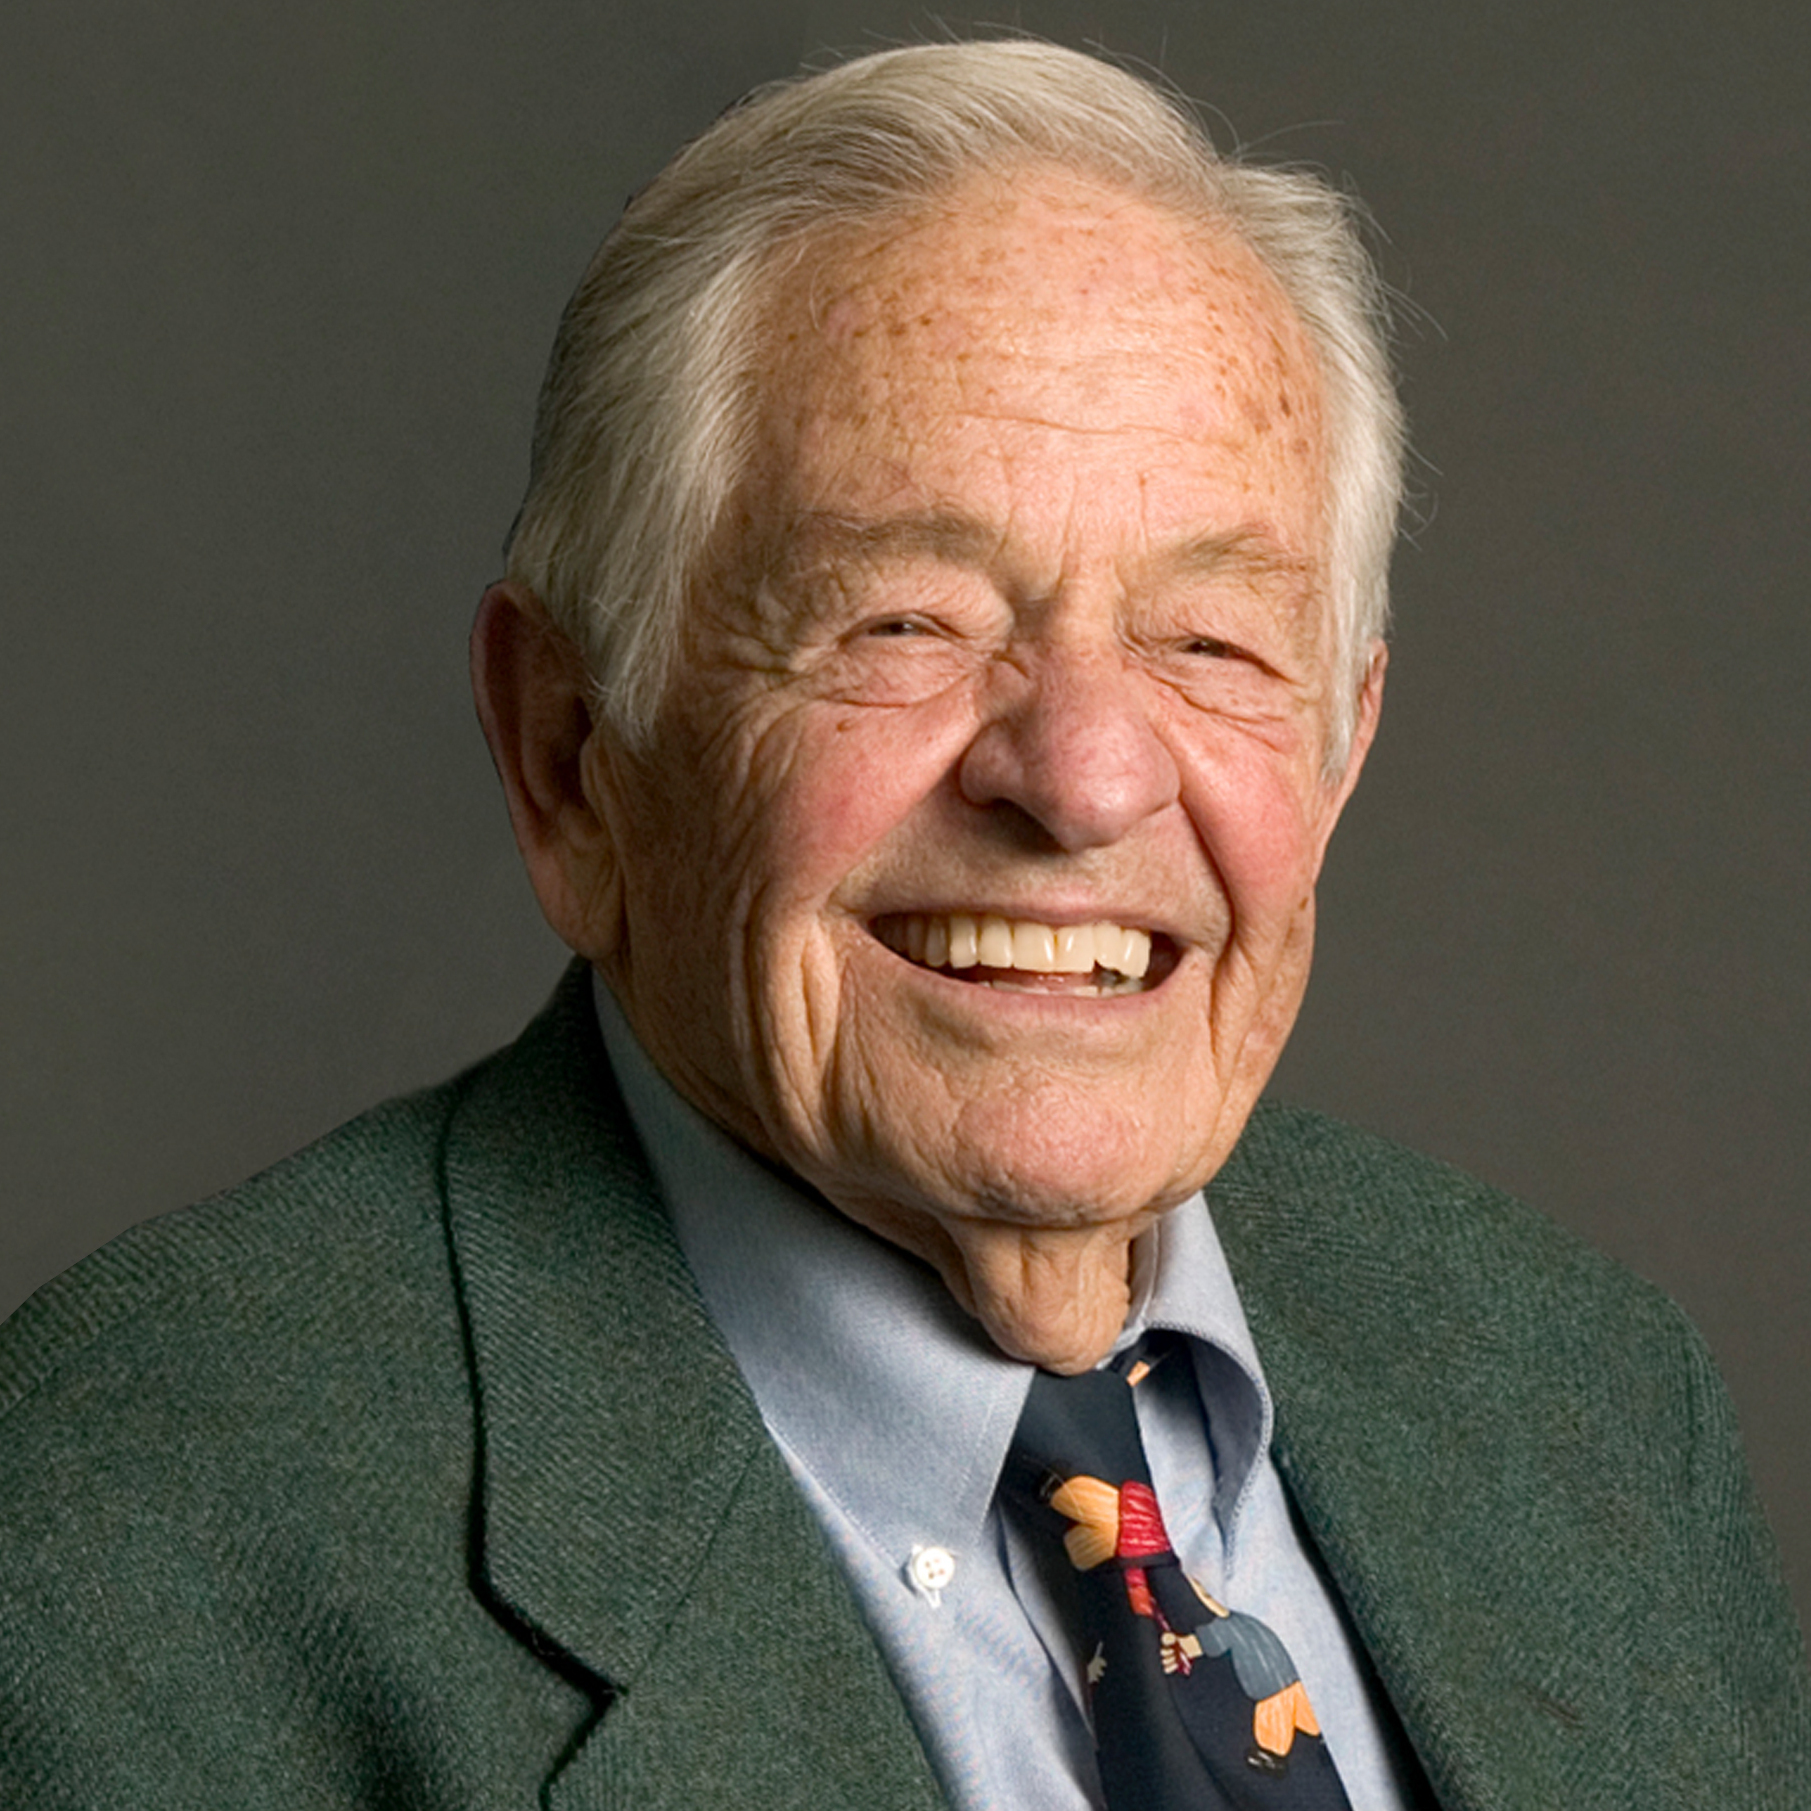 Dr. T. Berry Brazelton developed the Neonatal Behavioral Assessment Scale, which is used worldwide to evaluate the abilities of newborn babies.